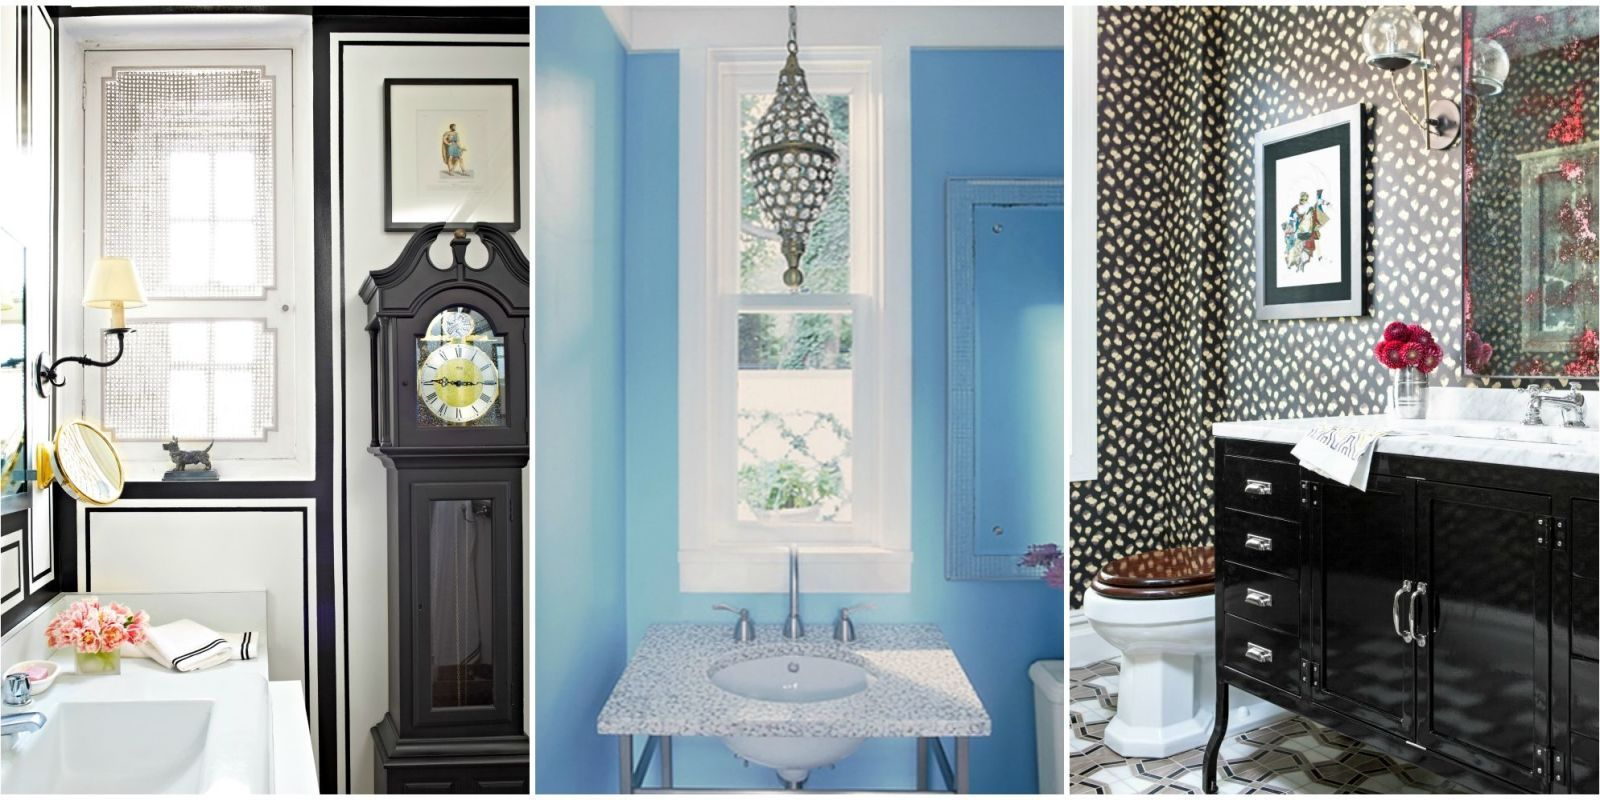 40 Gorgeous Powder Rooms With Images of bathrooms